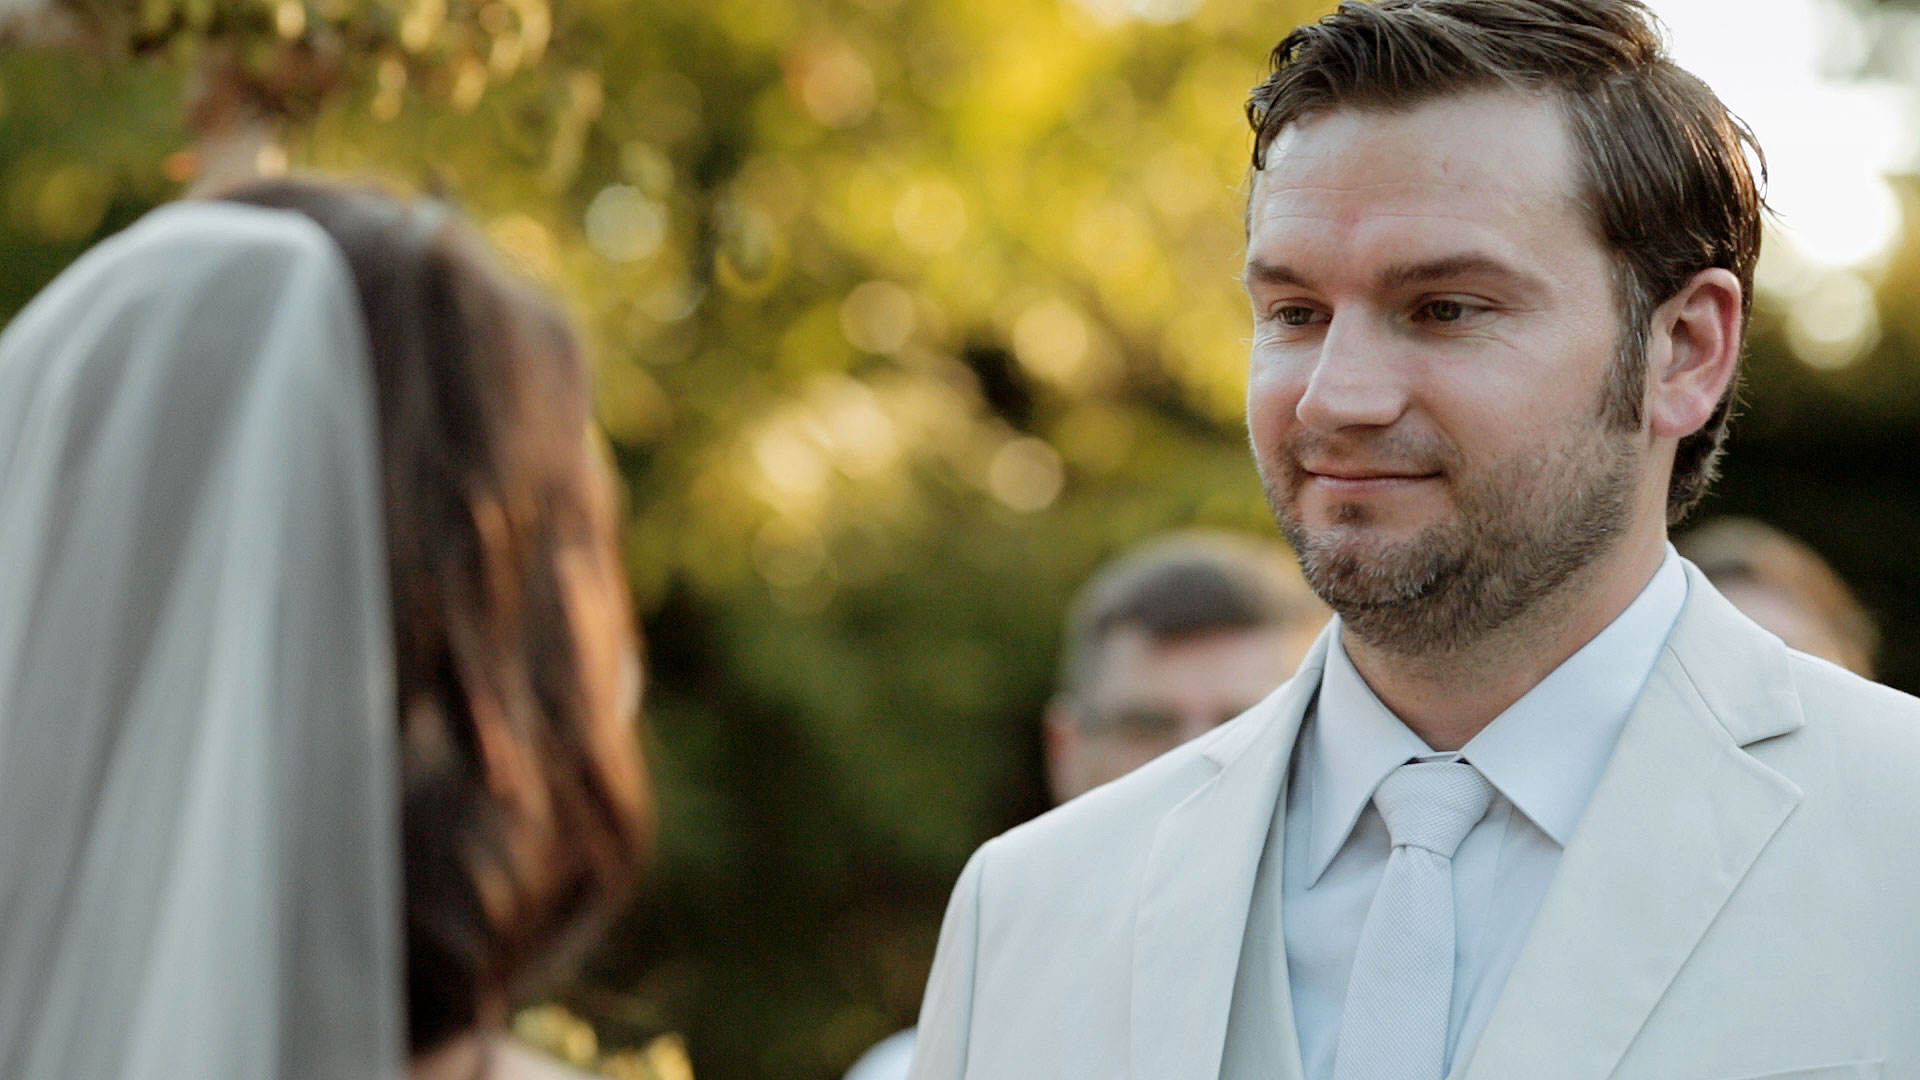 Graydon Hall Ceremony - Vows